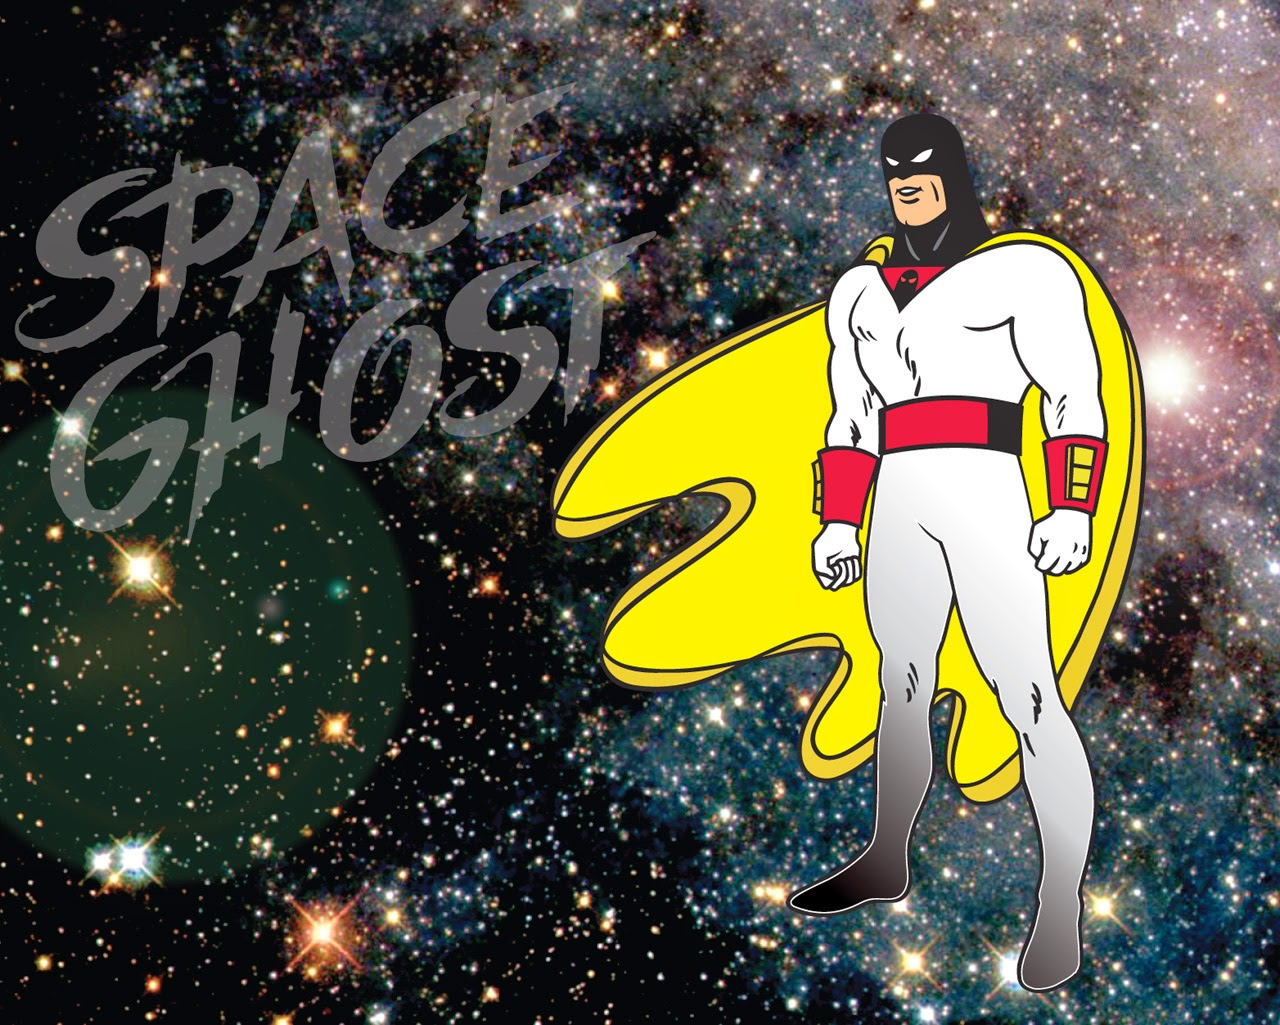 BEACH BUM COMICS : PROTECTOR OF THE UNIVERSE SPACE GHOST'S